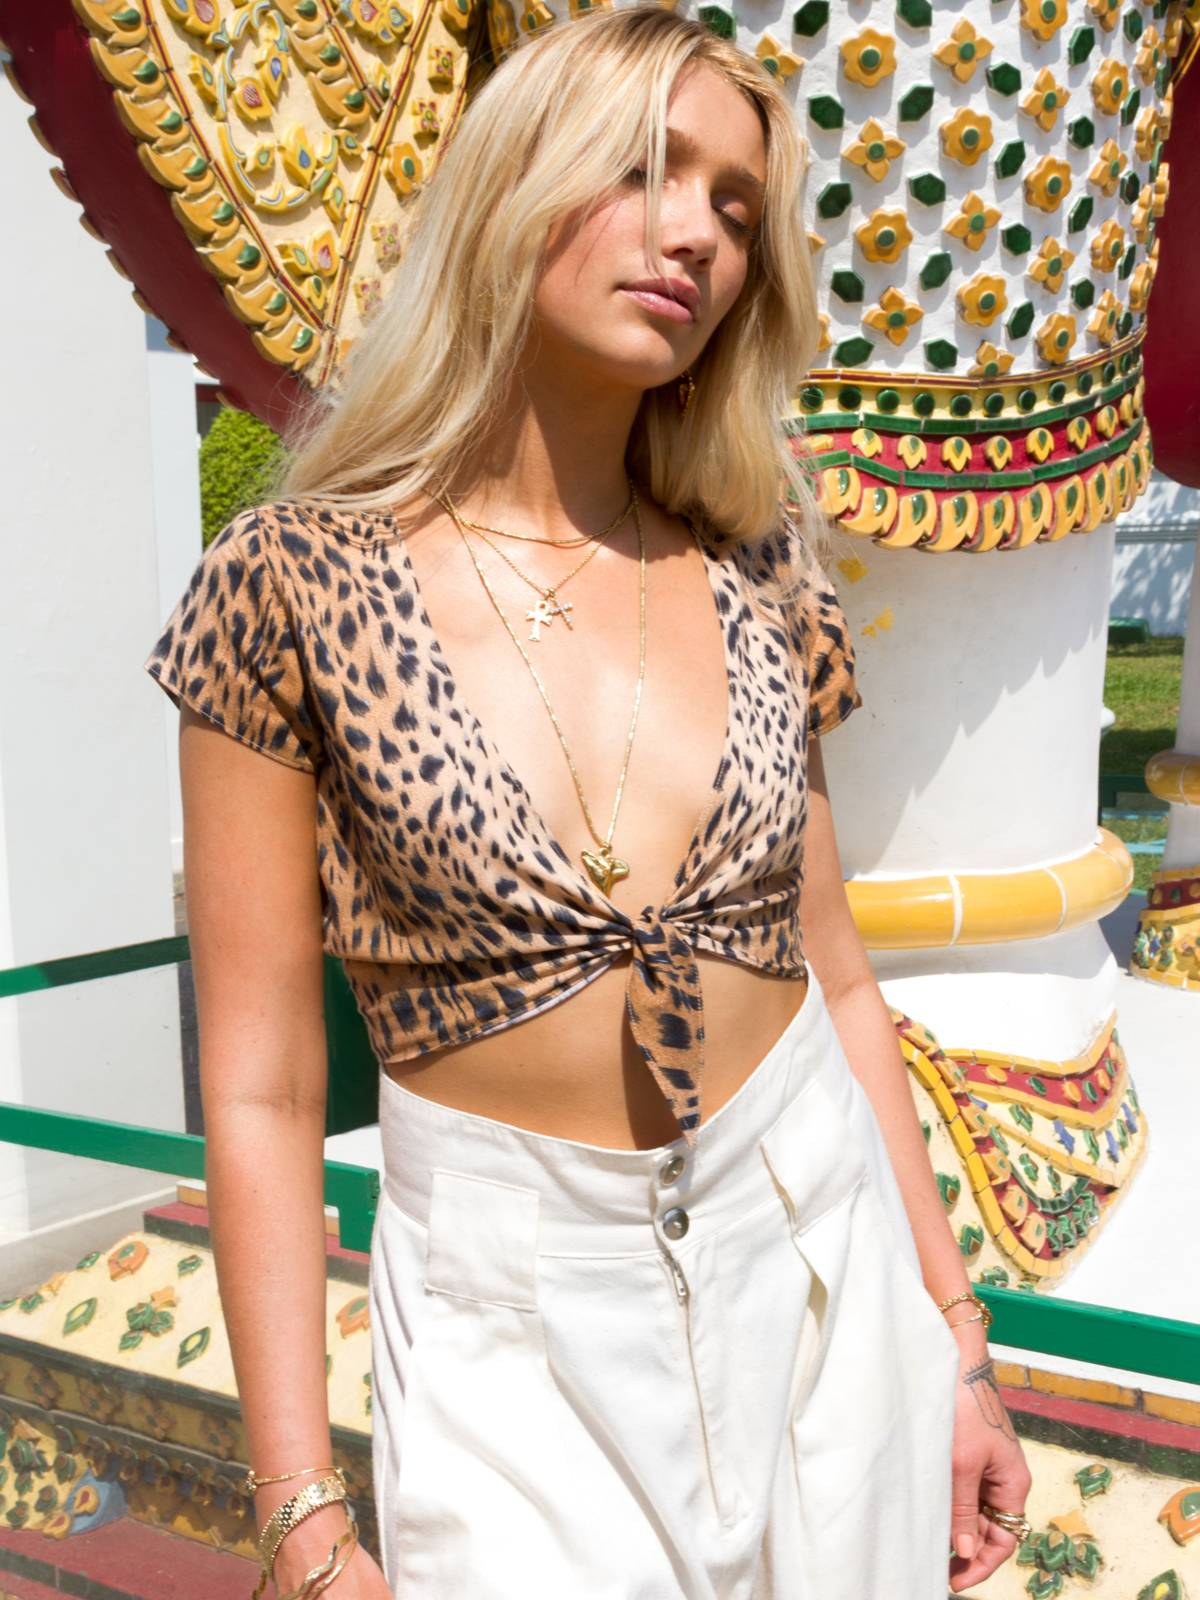 Clothing The Violette Top - Cheetah Vanessa Mooney